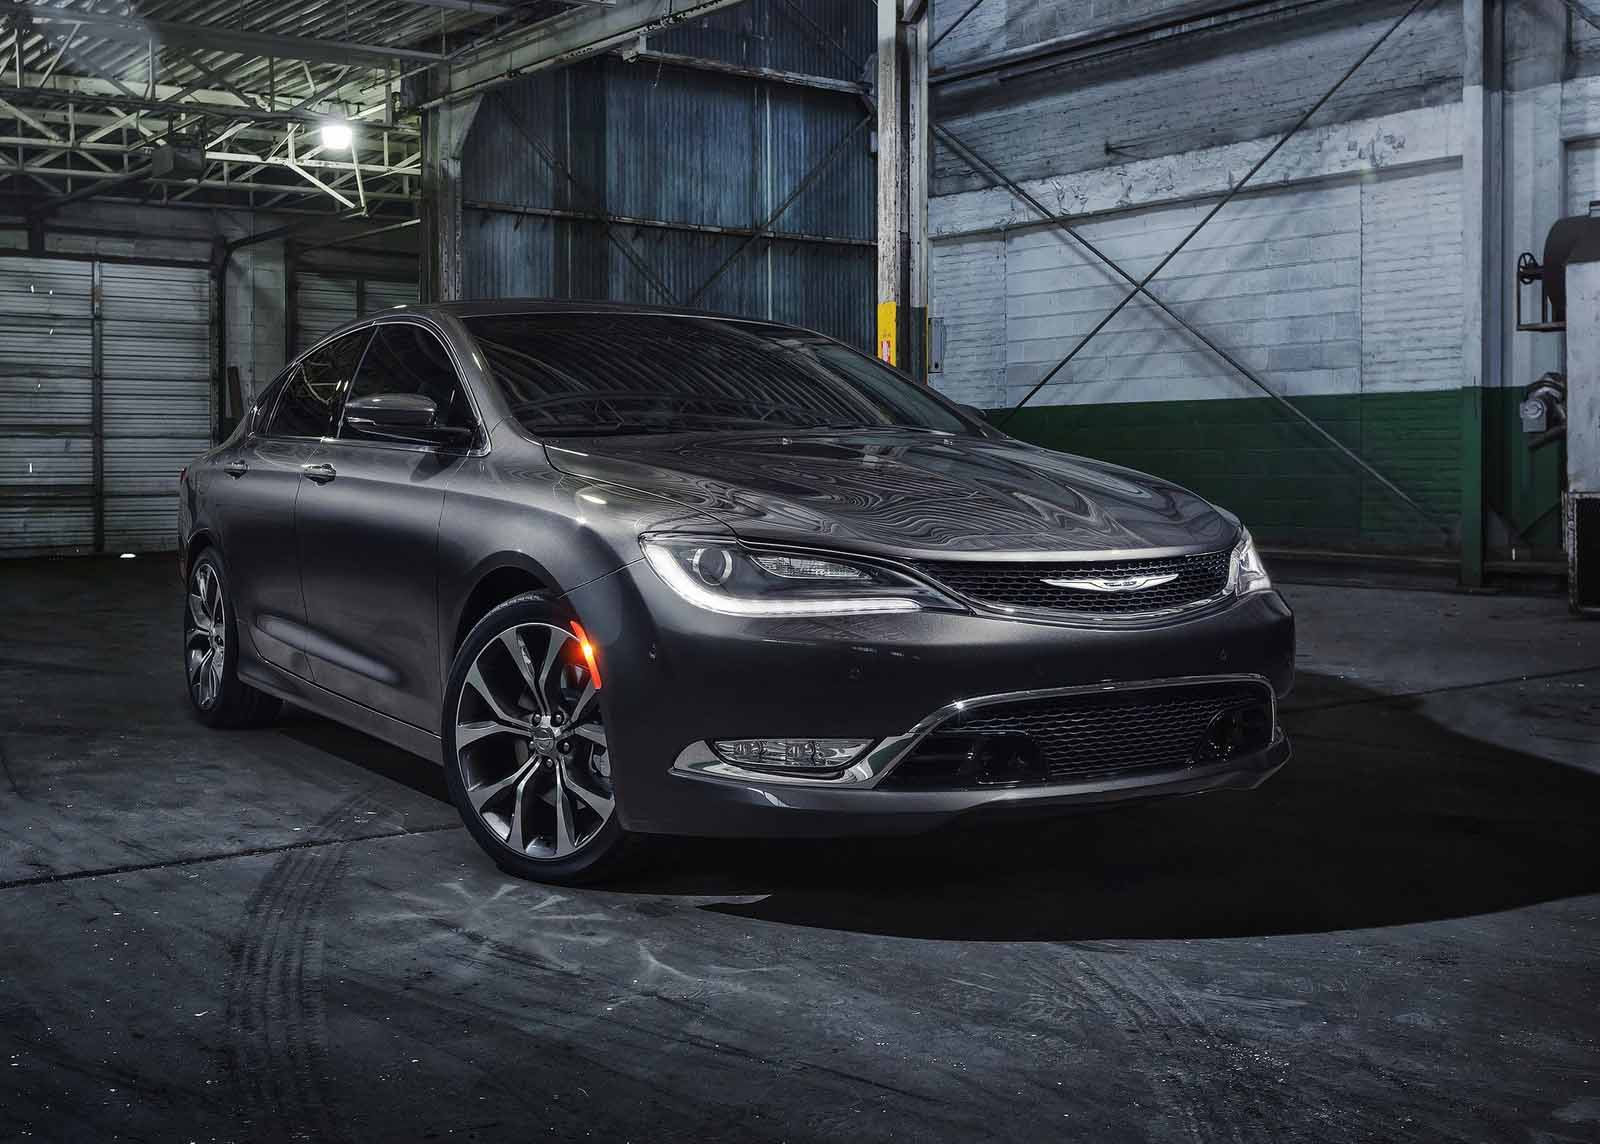 2015 chrysler 200 Wallpaper HD 1600x1144